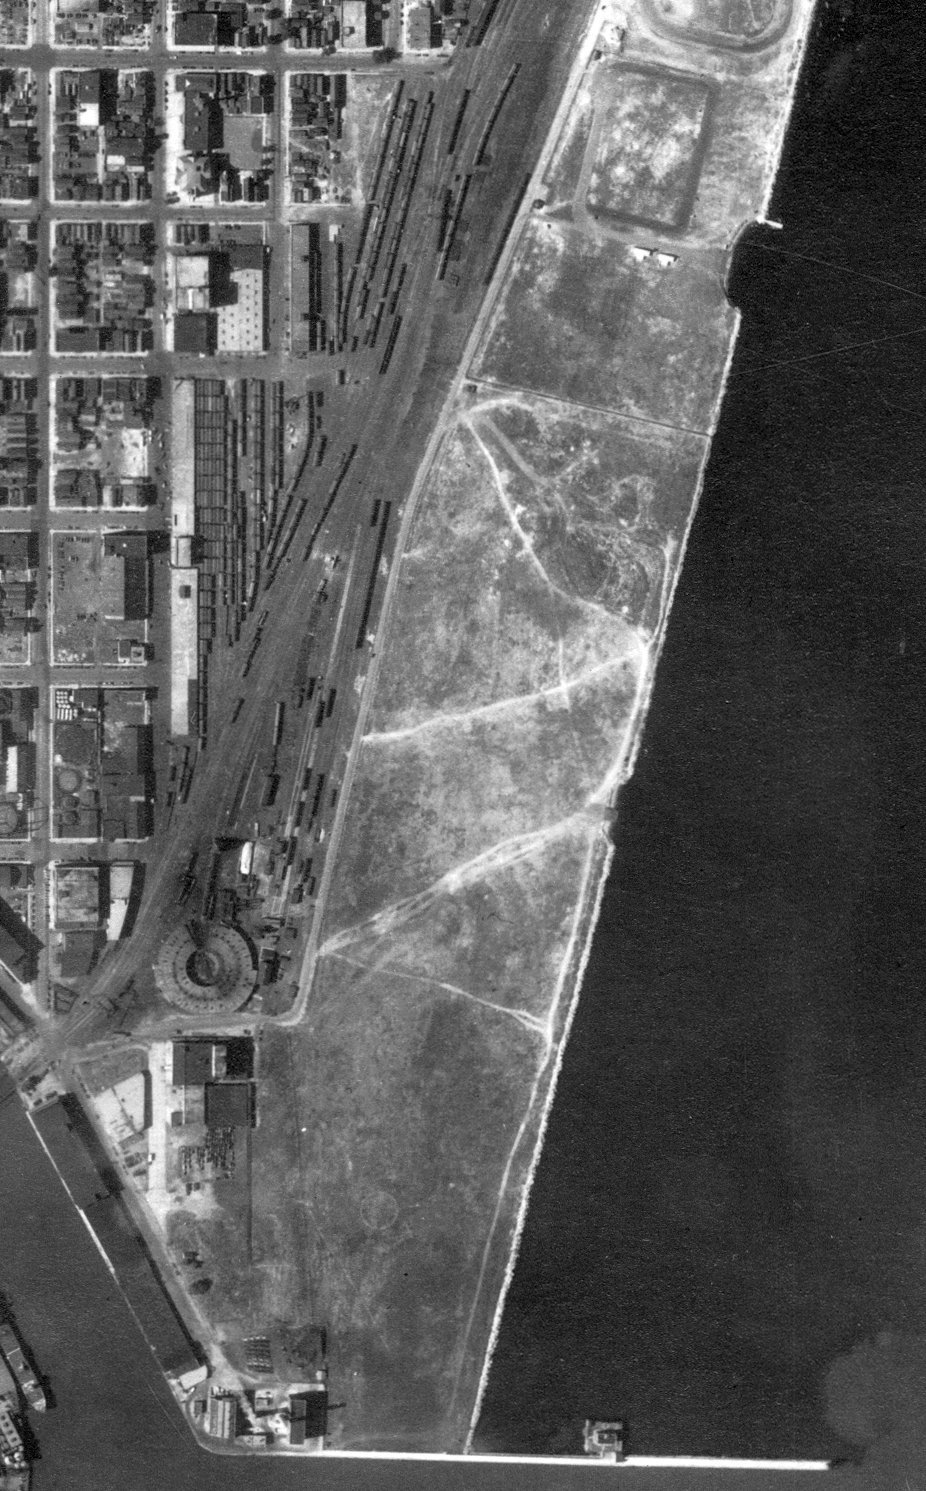 Aerial view of Maitland Airport (from the WI Historic Aerial Imagery Finder), 1937.